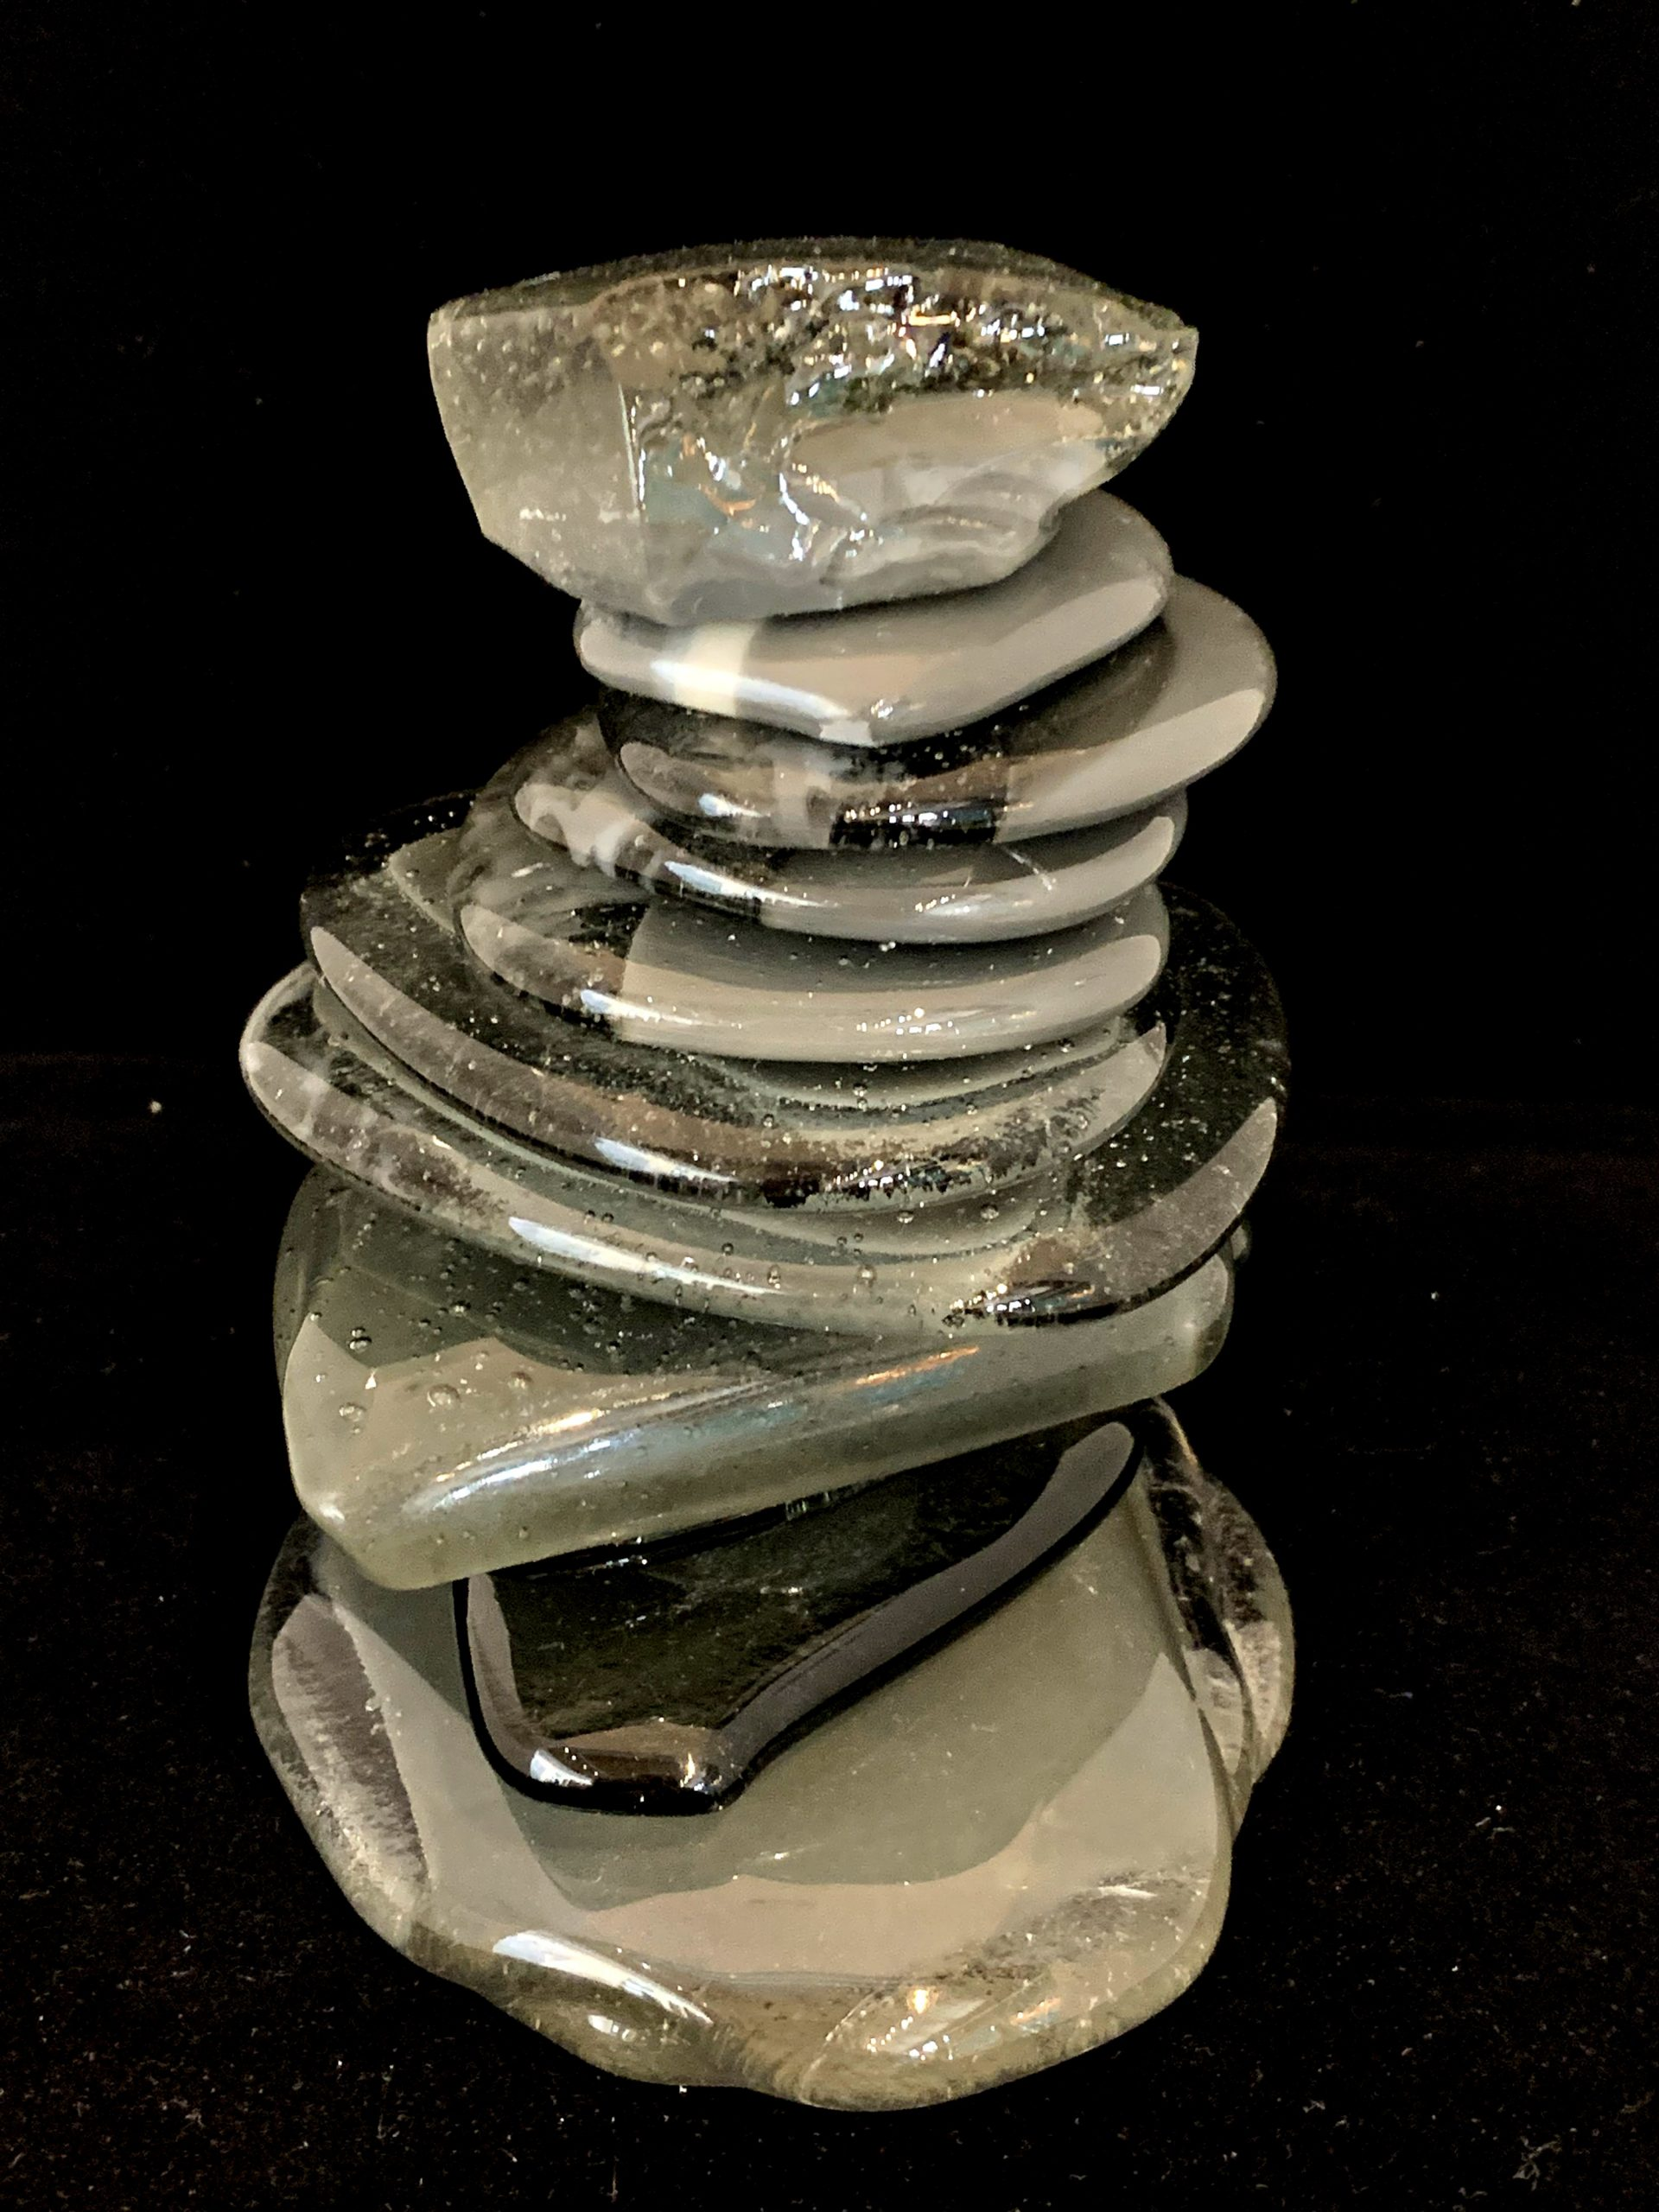 One -of-a-kind cast glass Rocky Mountain Cairn 69 sculpture by Heather Cuell | Effusion Art Gallery + Glass Studio, Invermere BC